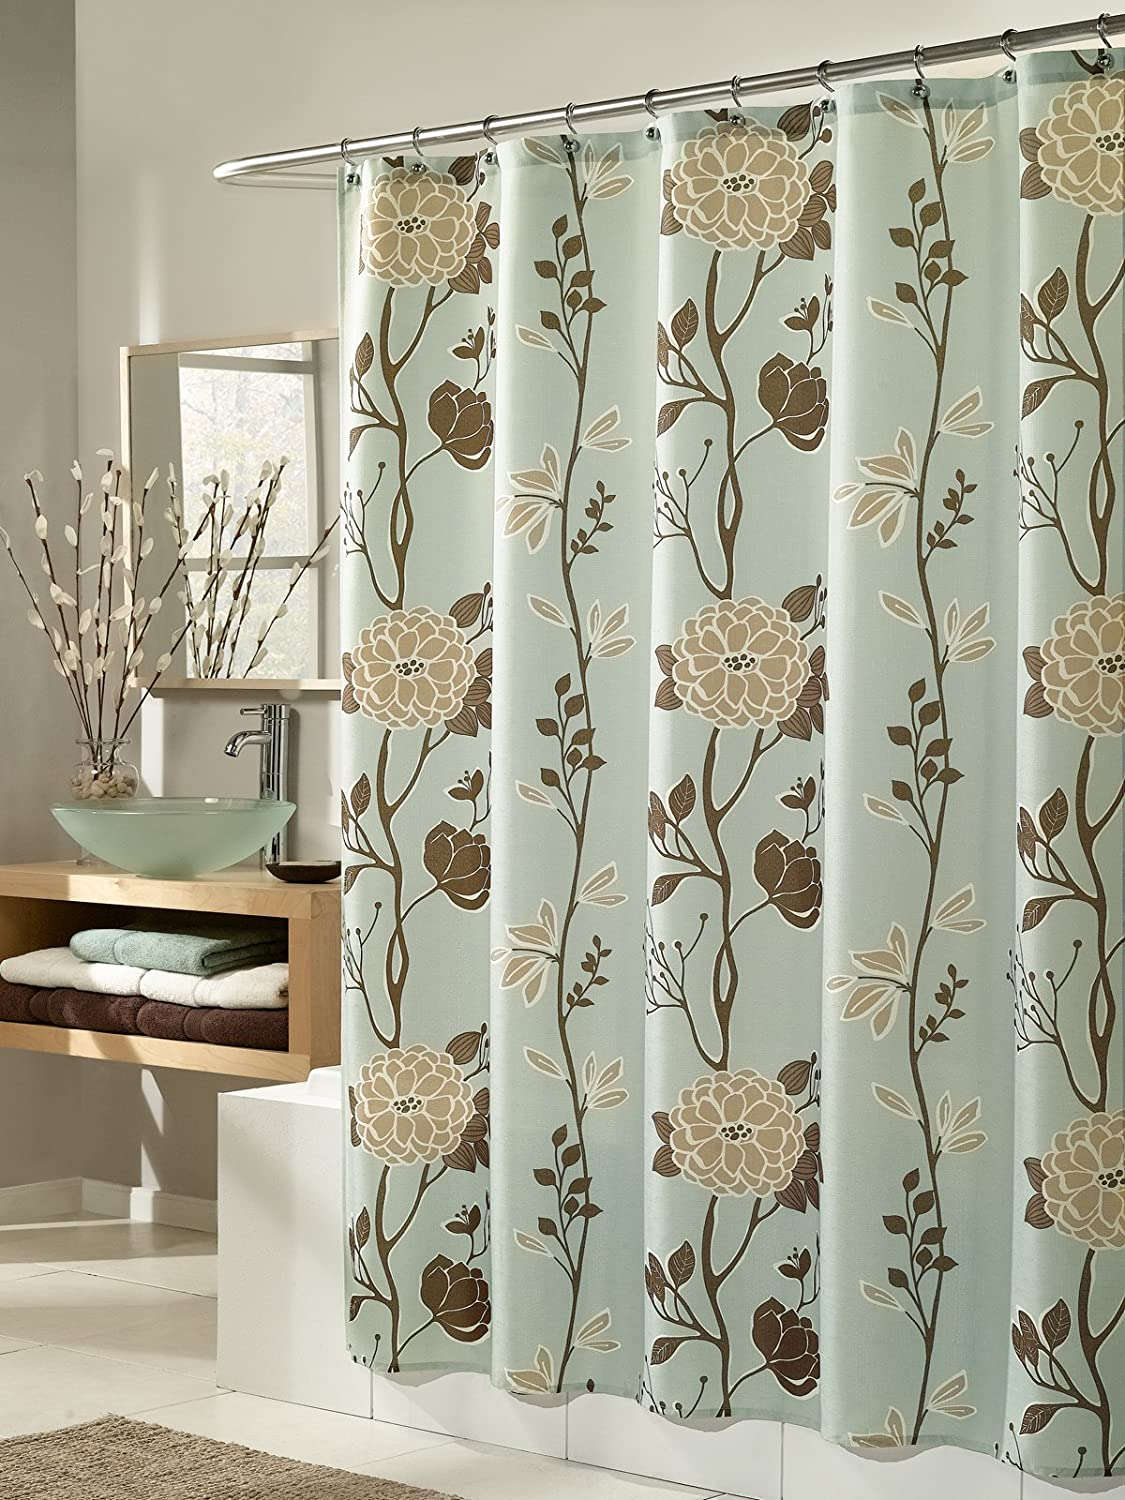 Amazon Cassandra Blue Fabric Shower Curtain By MStyle 72 Wide X Long Home Kitchen